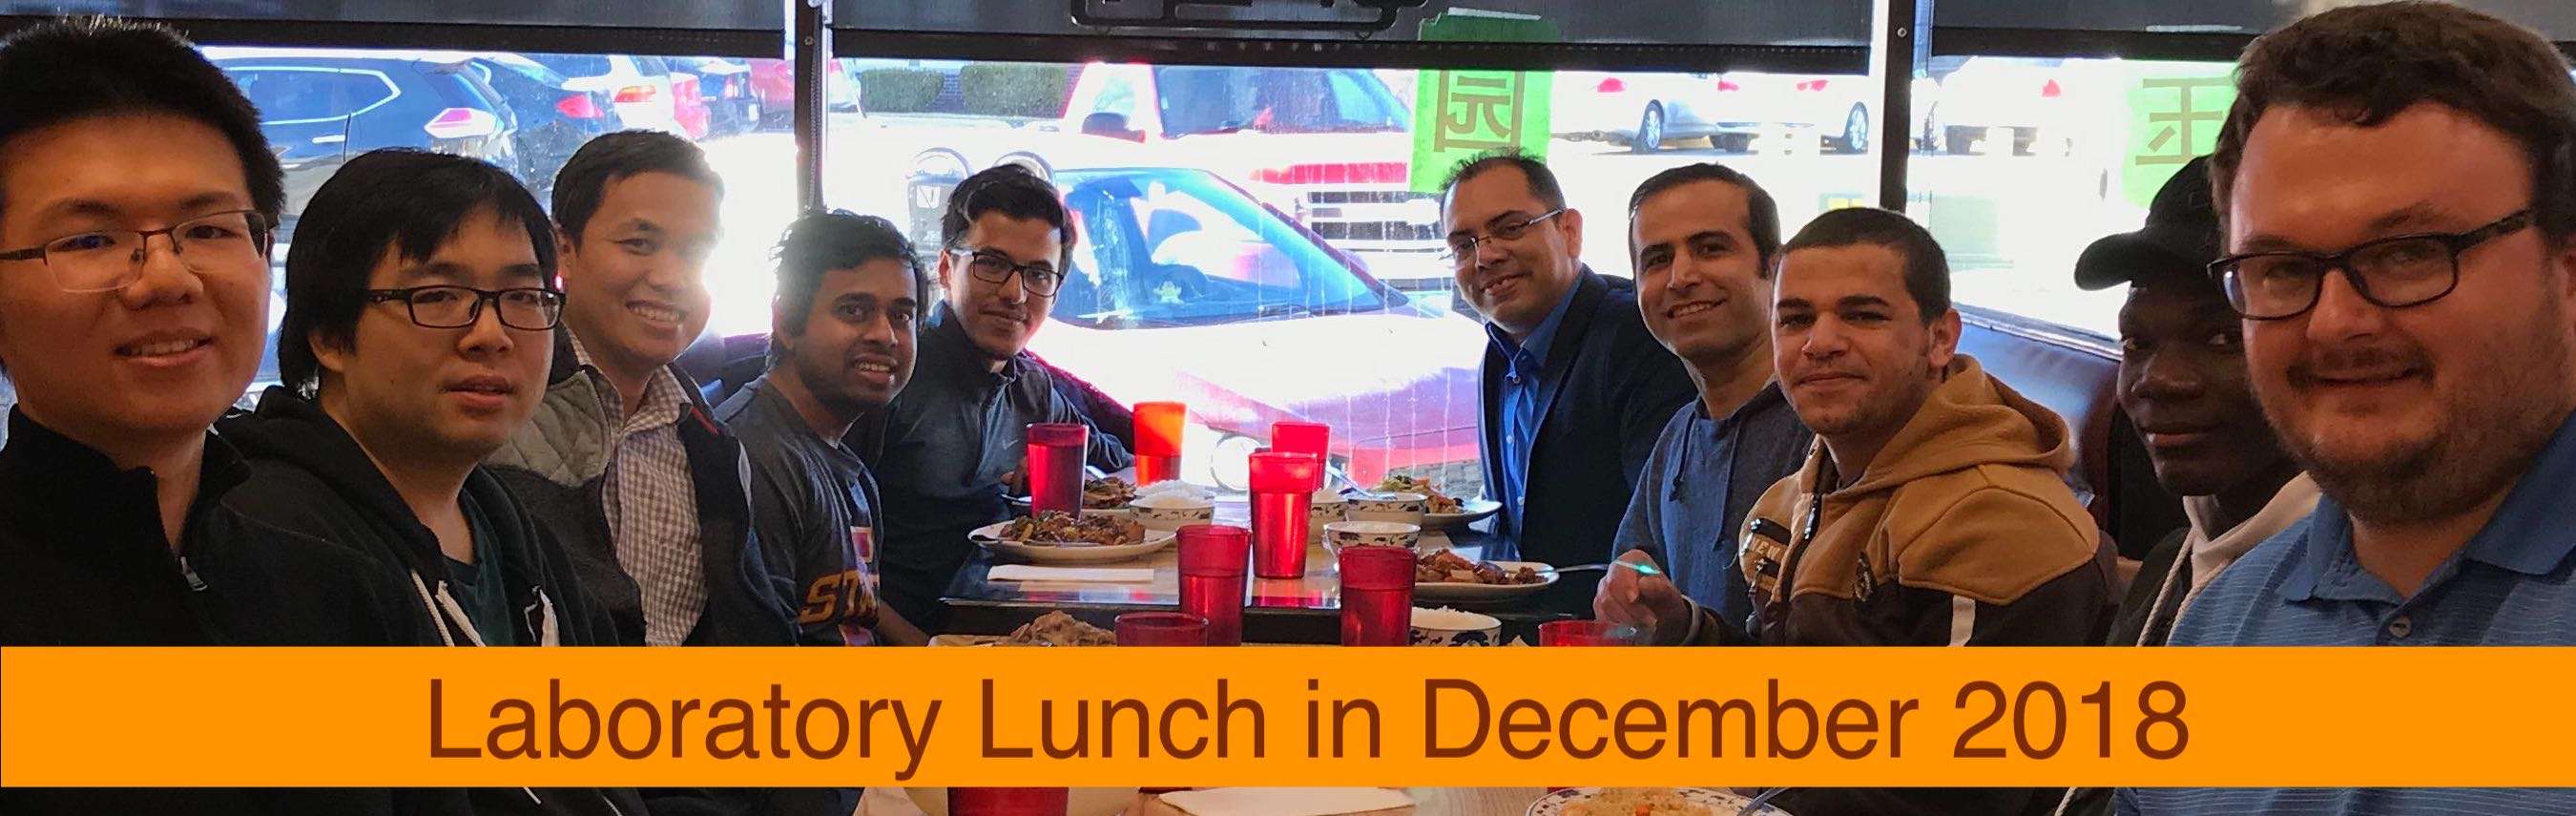 End of the year lunch, December 2018